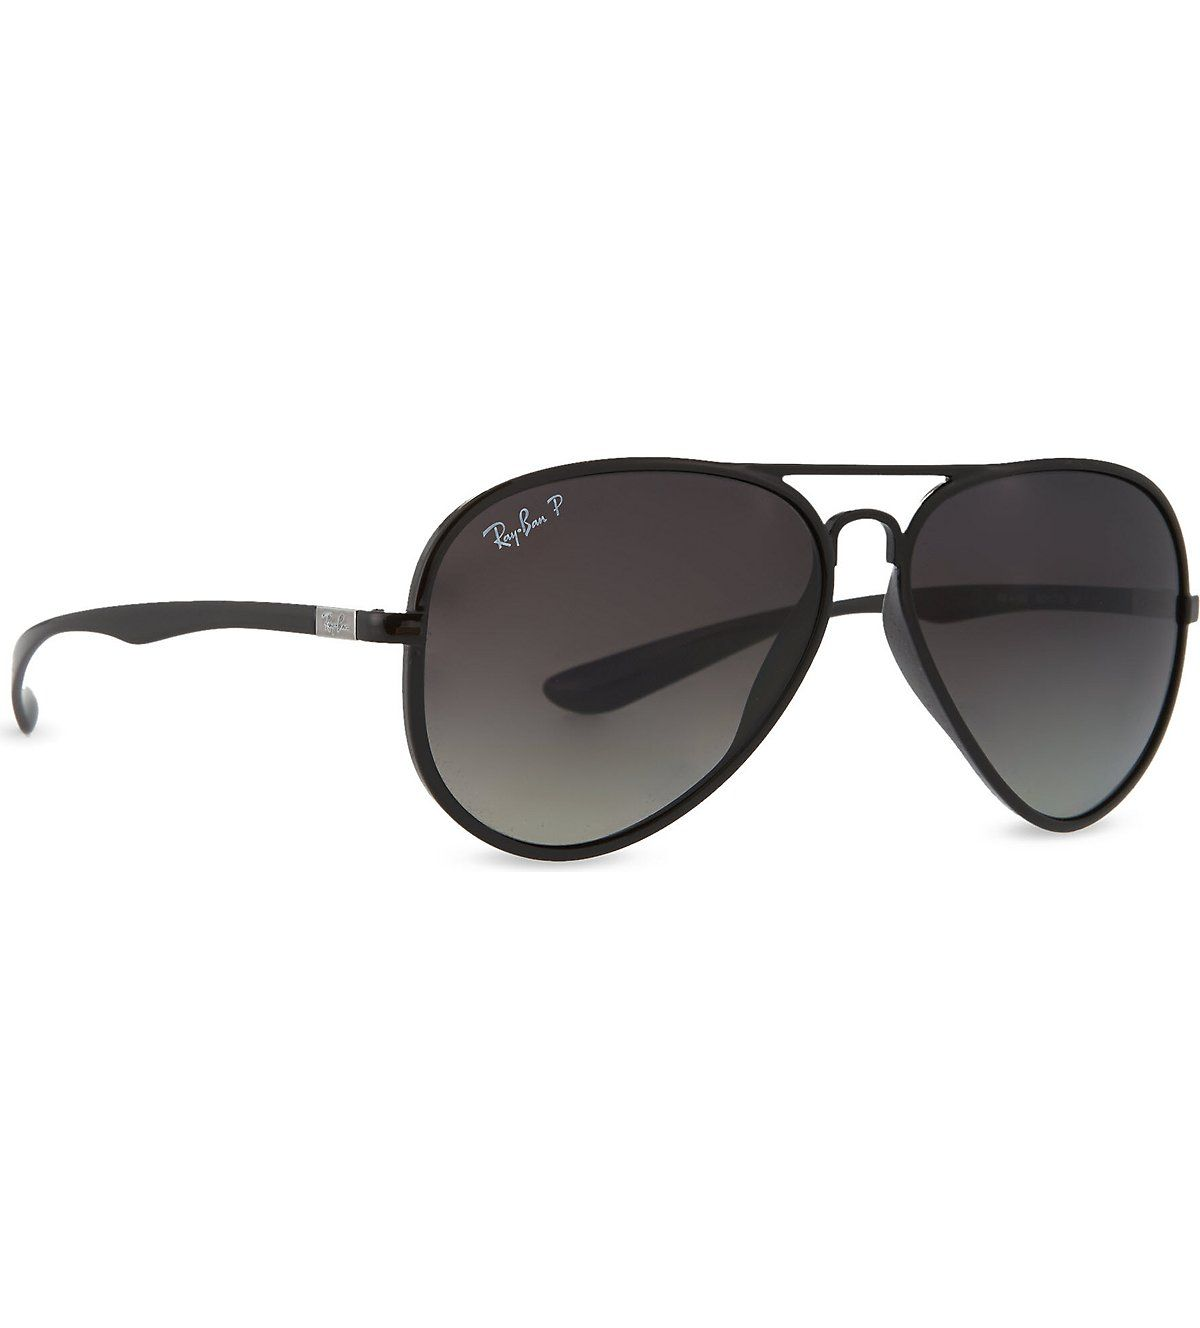 RAY-BAN Black aviator sunglasses RB4180 59 (Shiny black | Giftit to ...